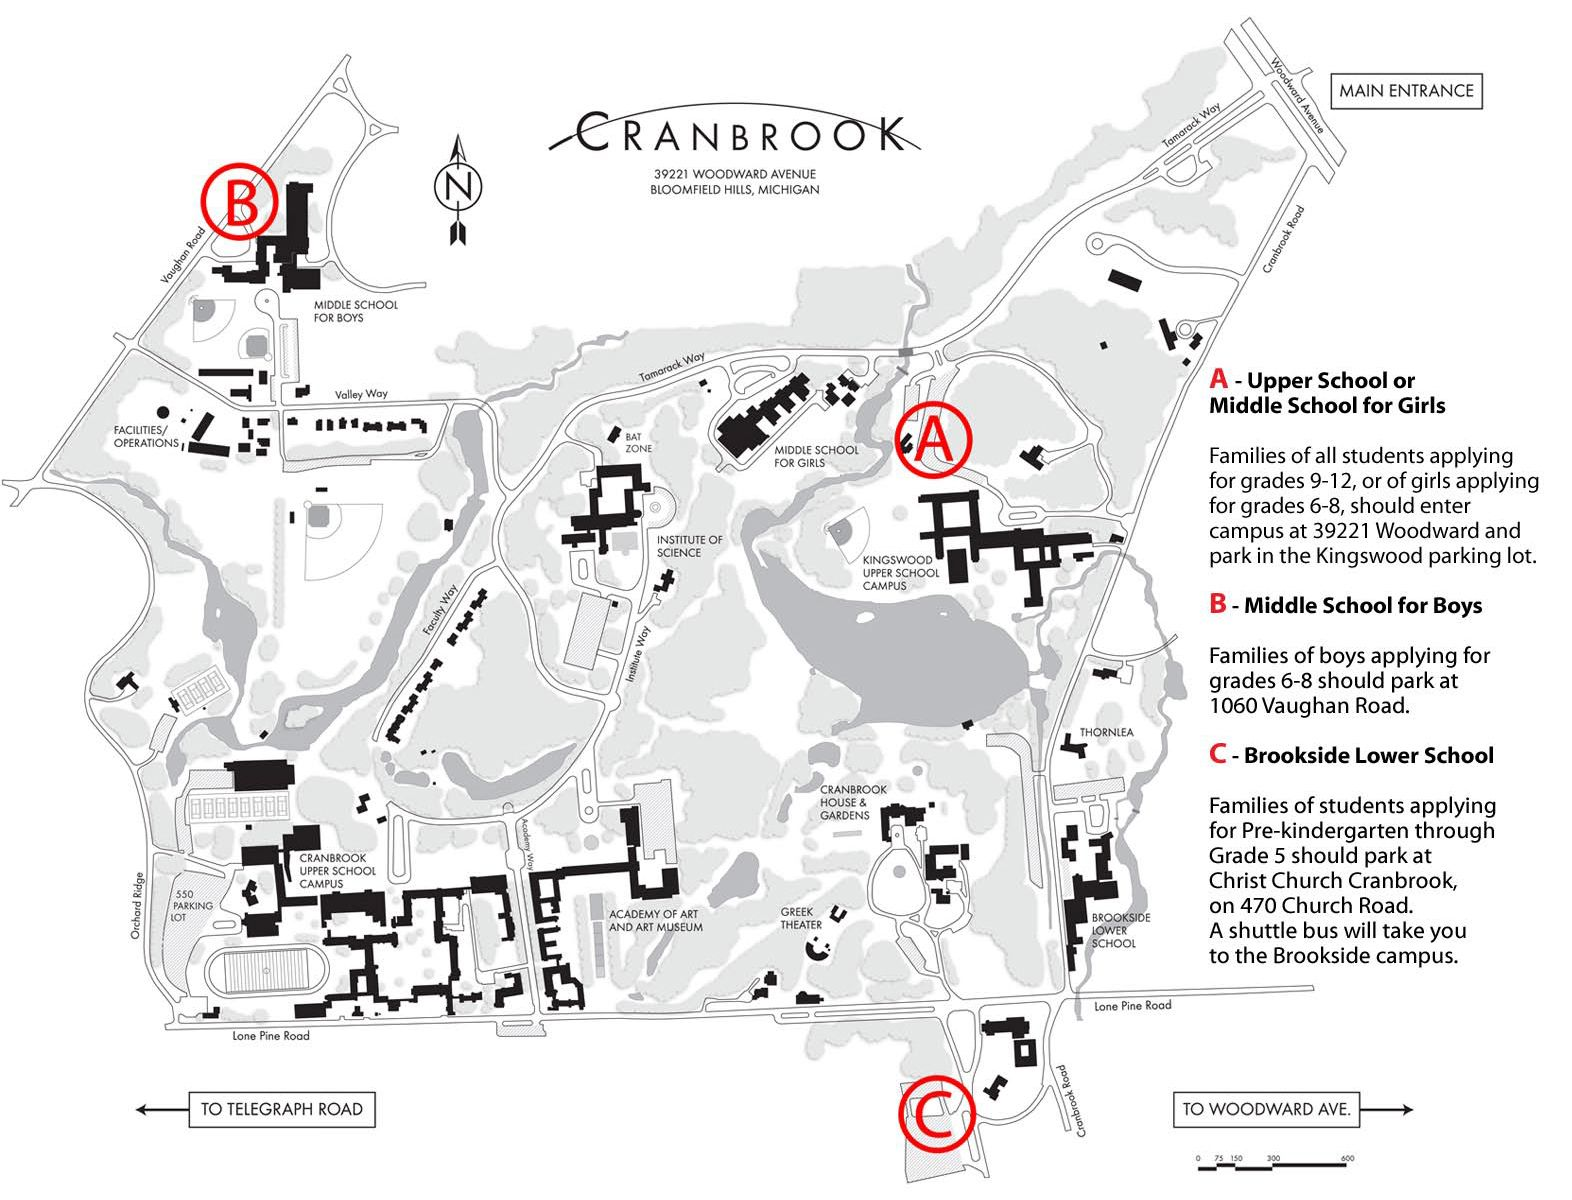 map of cranbrook campus Cranbrook Schools Cranbrook Open House Admission Events At map of cranbrook campus